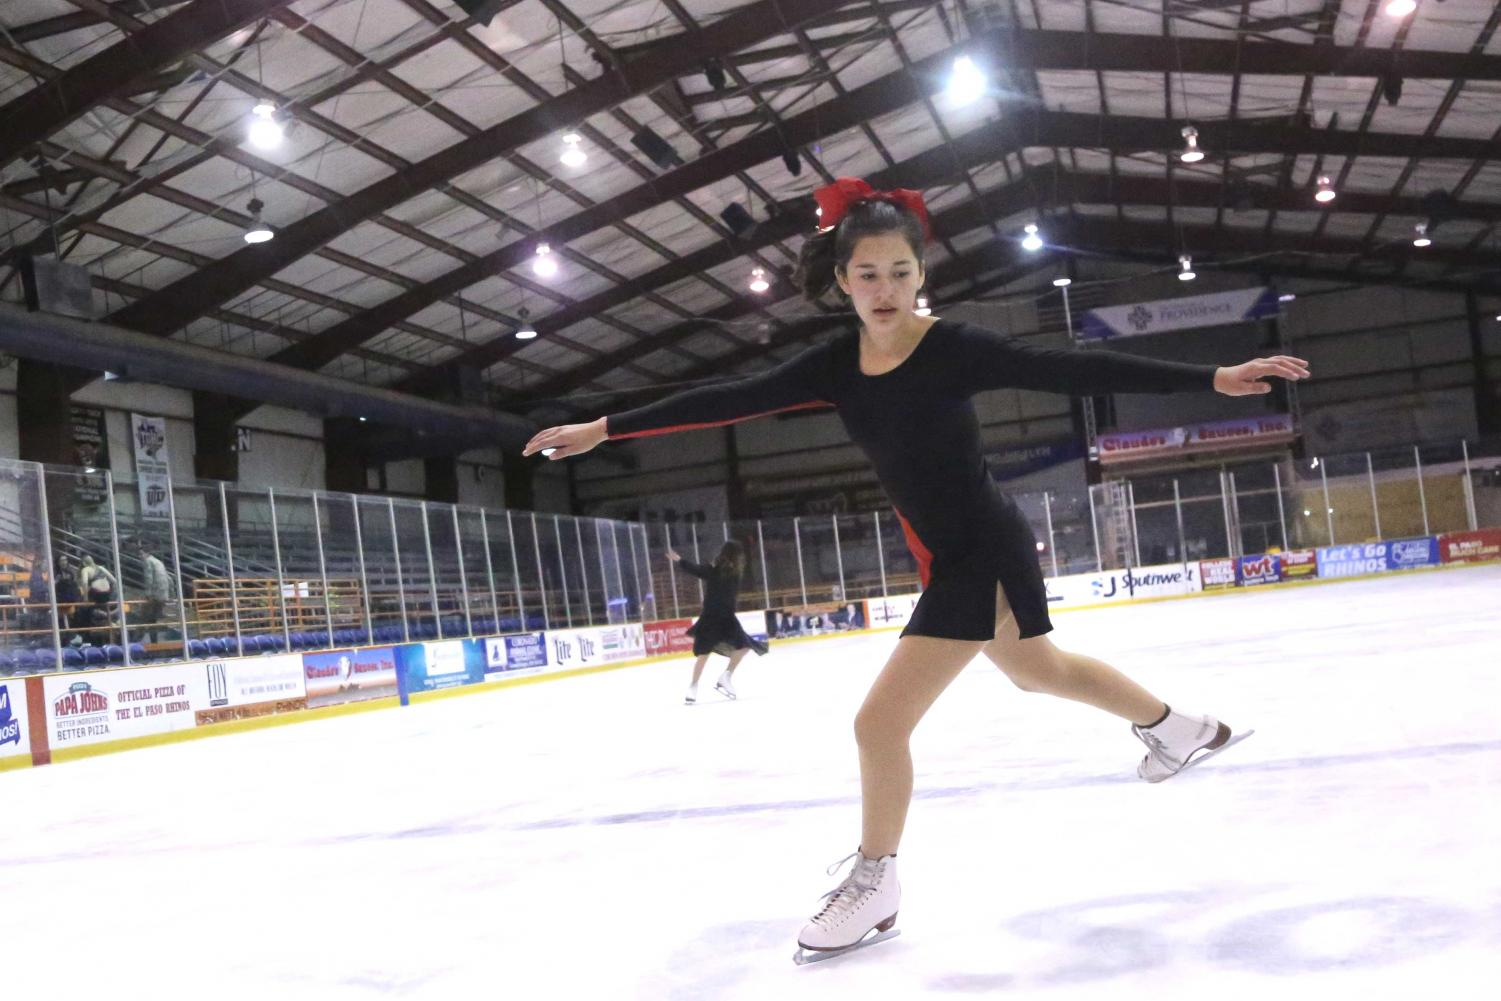 Amanda Amparan has been figure skating for years since she was 5 years old.